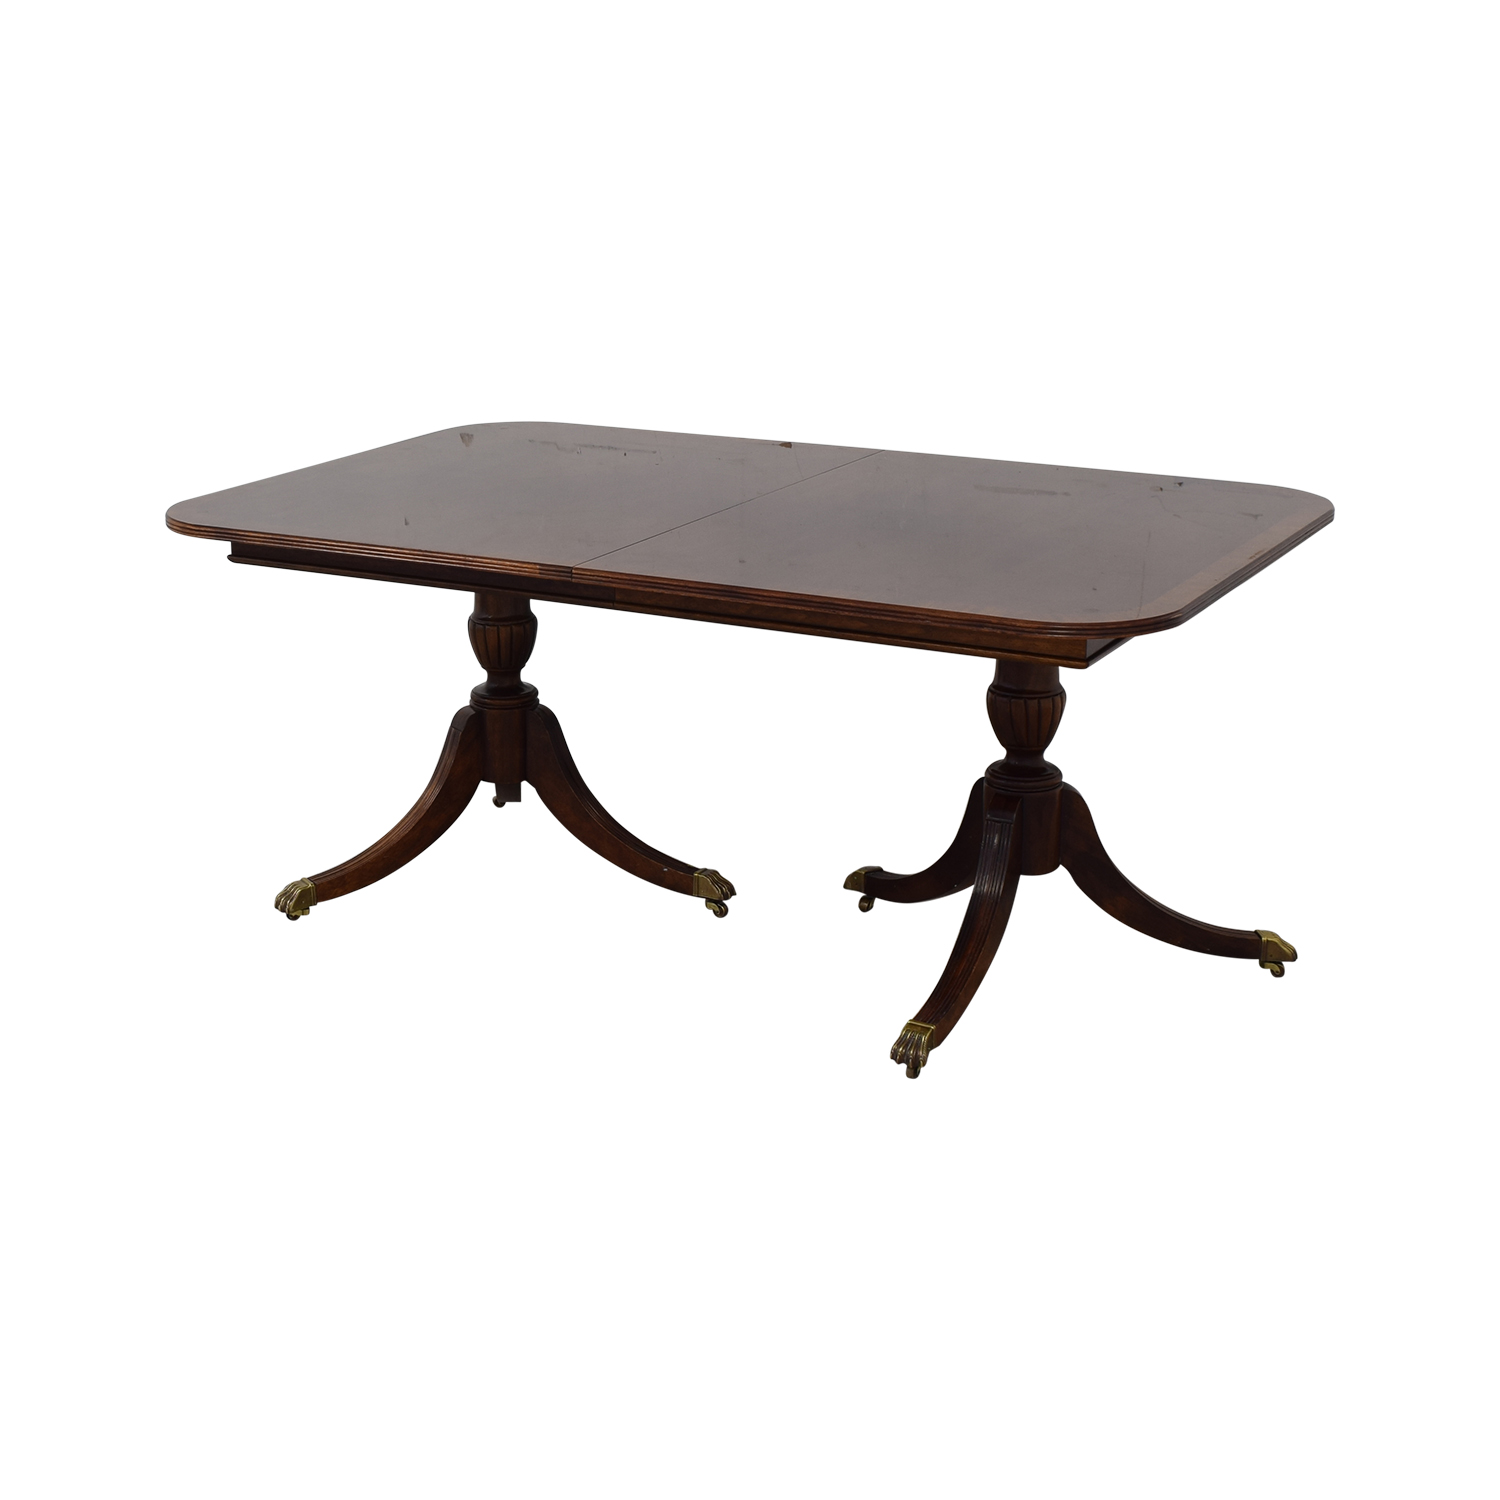 Thomasville Thomasville Extendable Dining Table dimensions